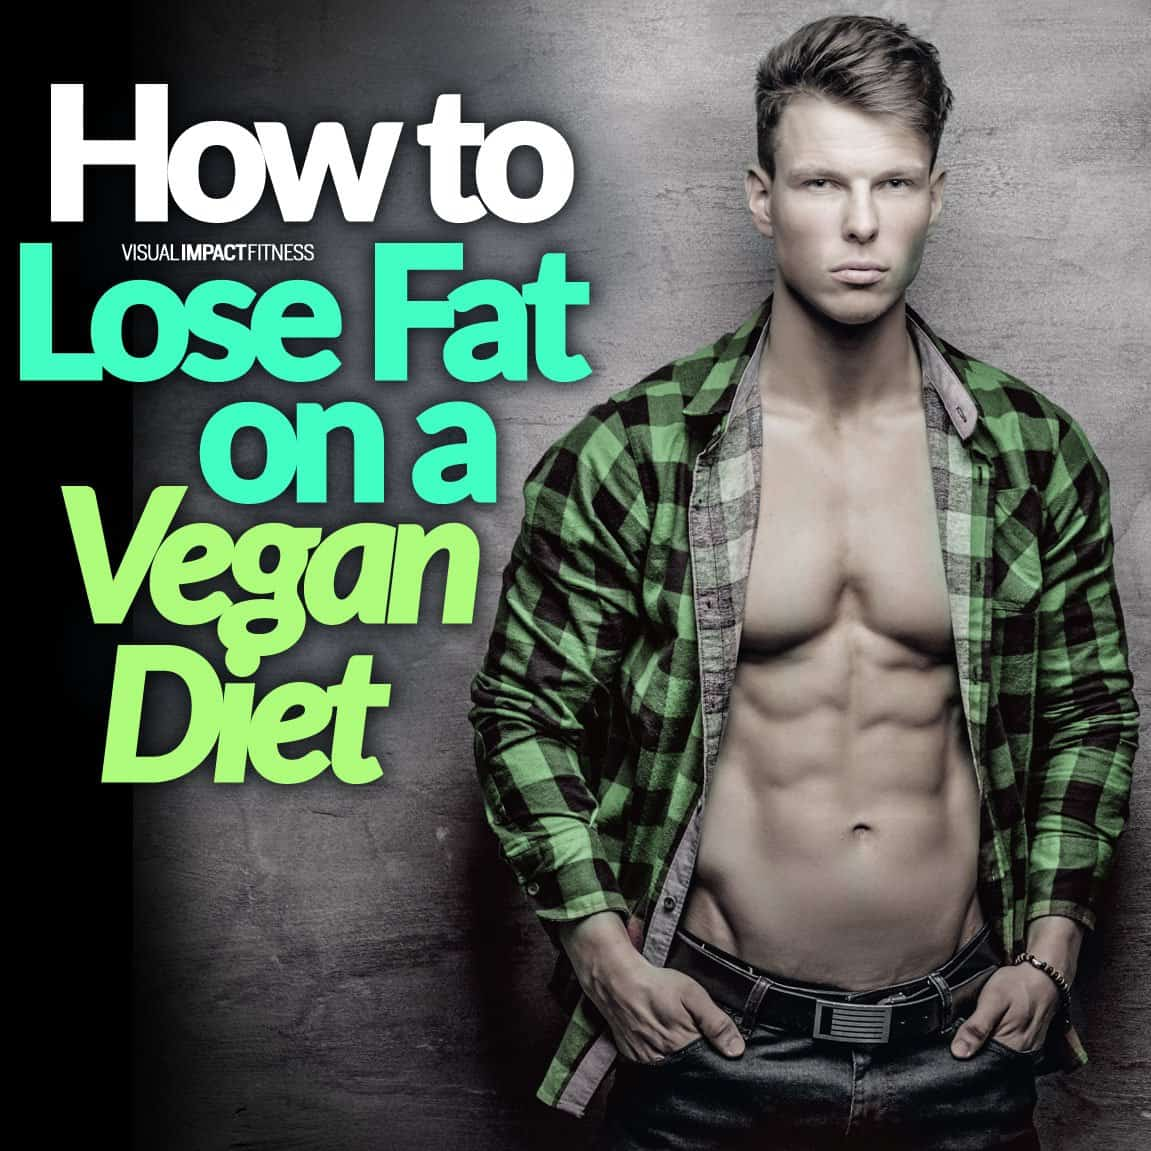 How To Lose Fat on a Vegan Diet